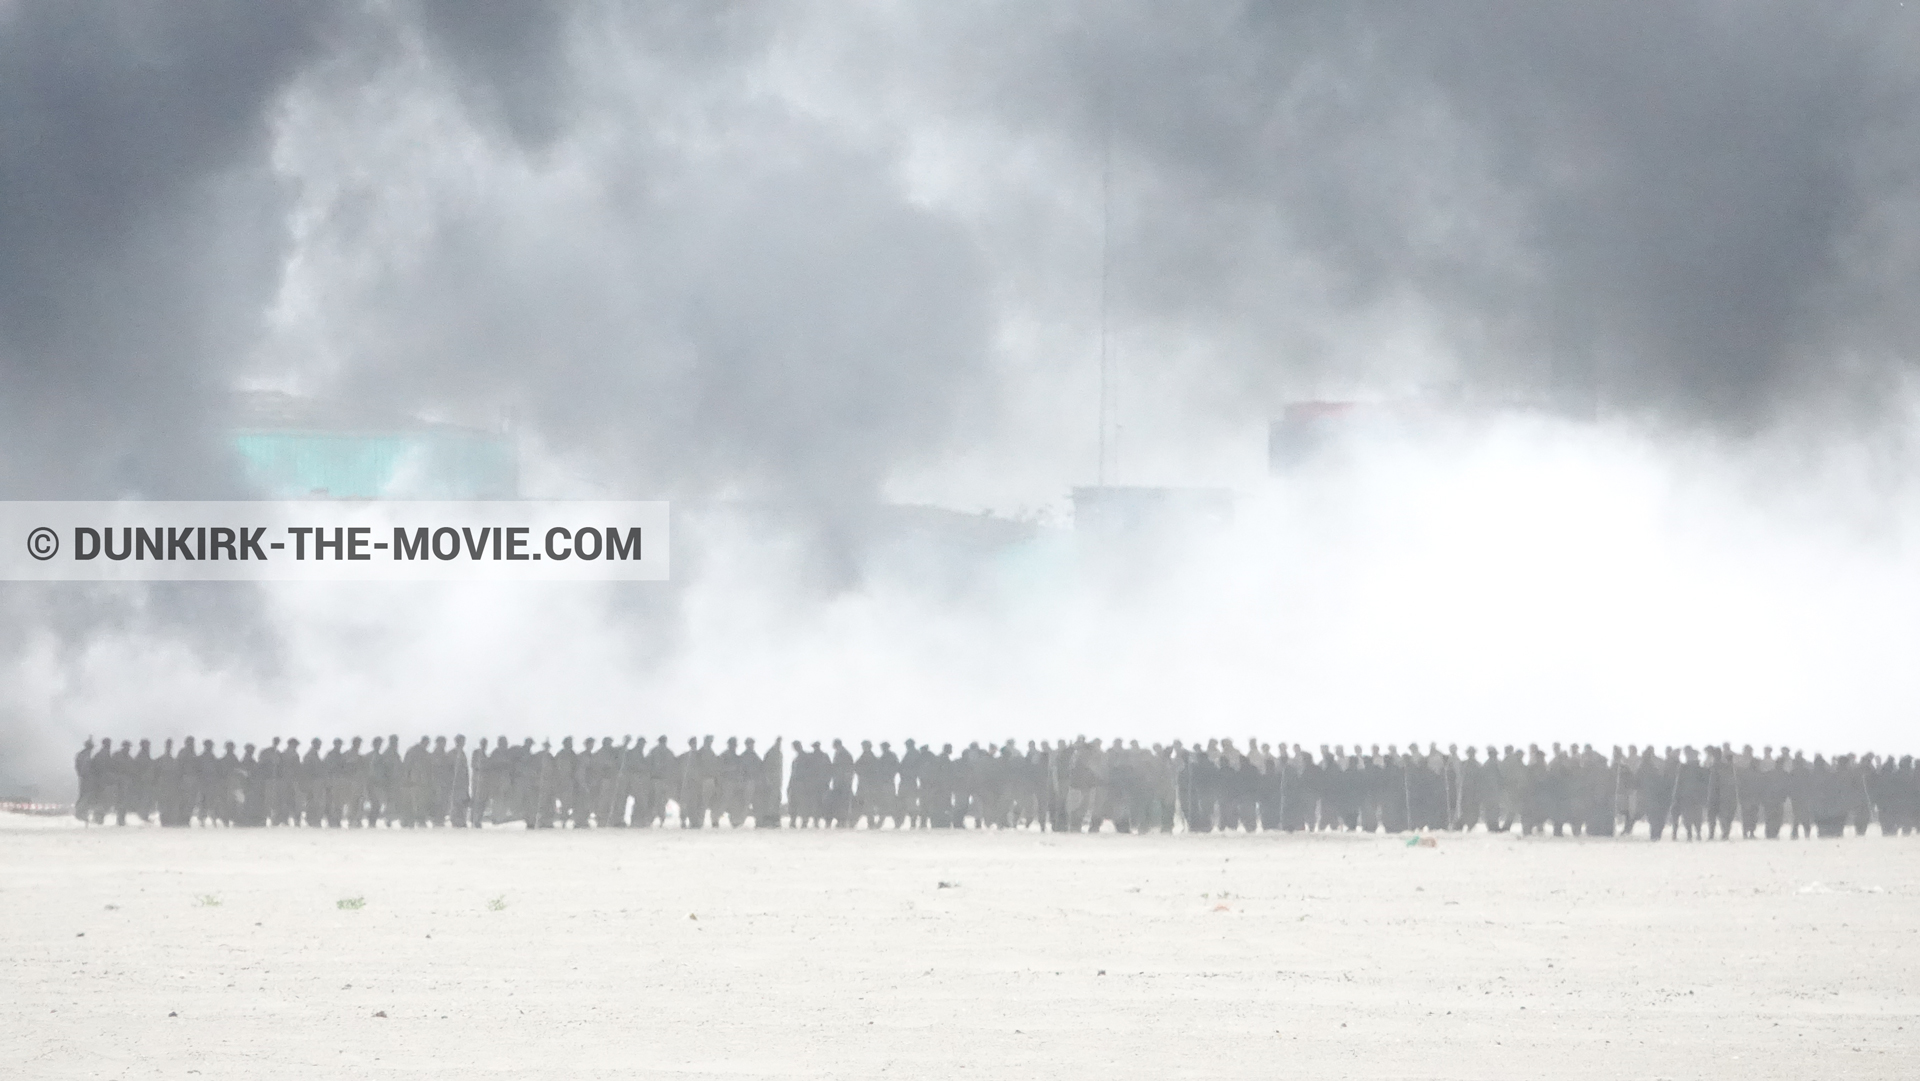 Picture with decor, black smoke, beach,  from behind the scene of the Dunkirk movie by Nolan